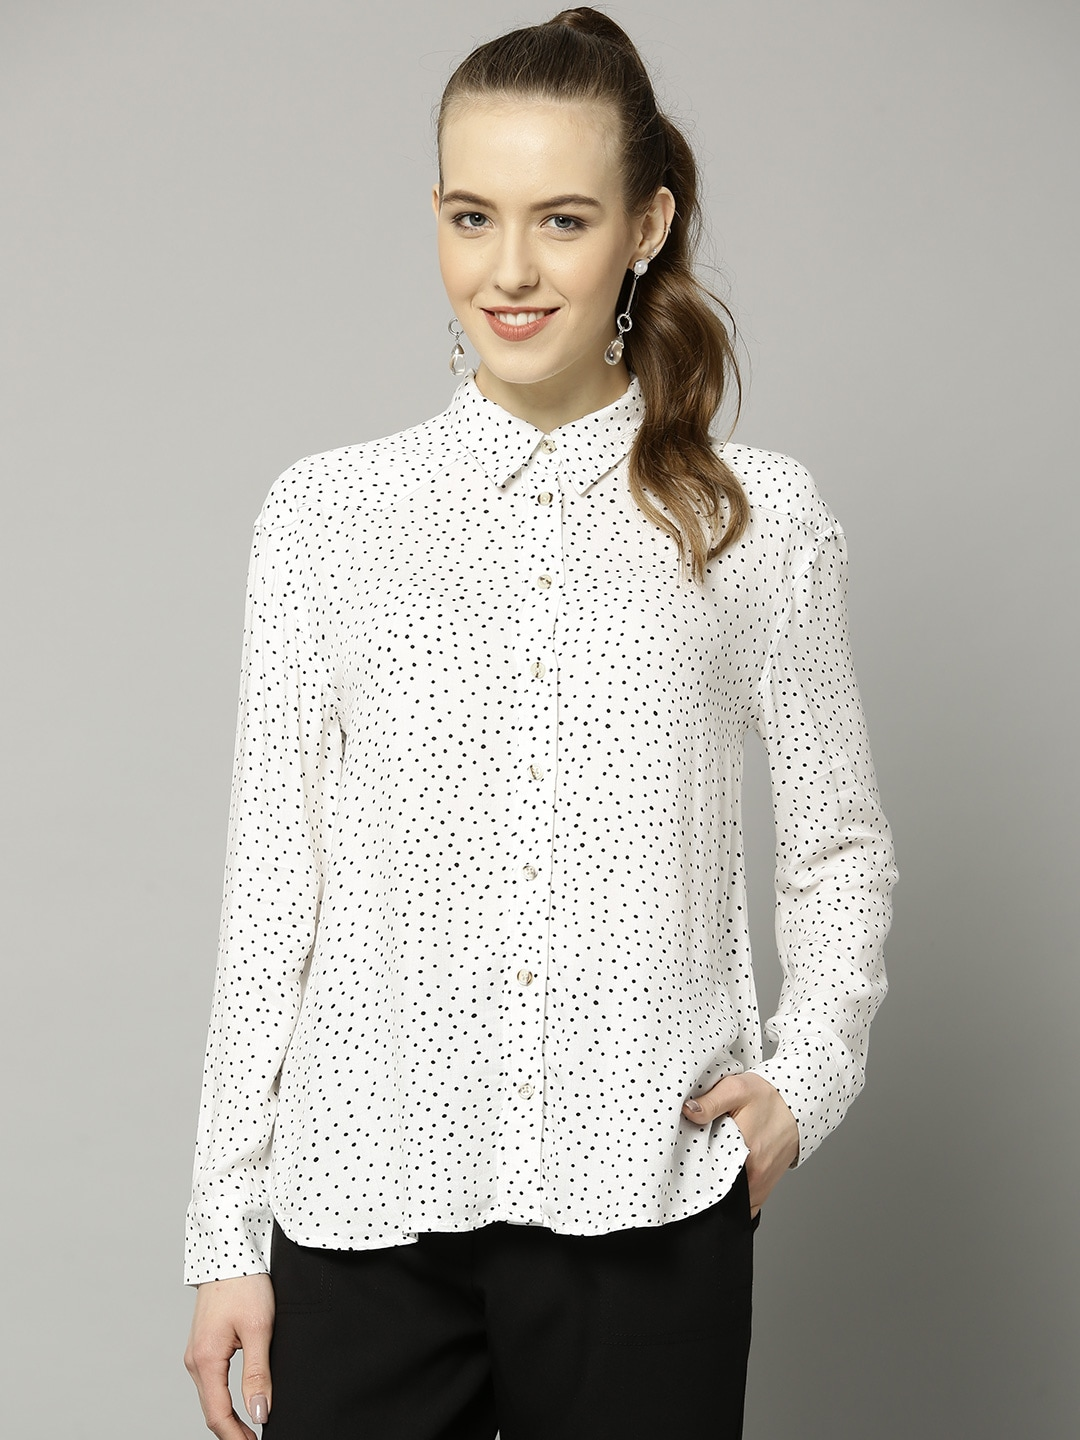 184956859bdeba Womens White Shirts Marks Spencer – EDGE Engineering and Consulting ...